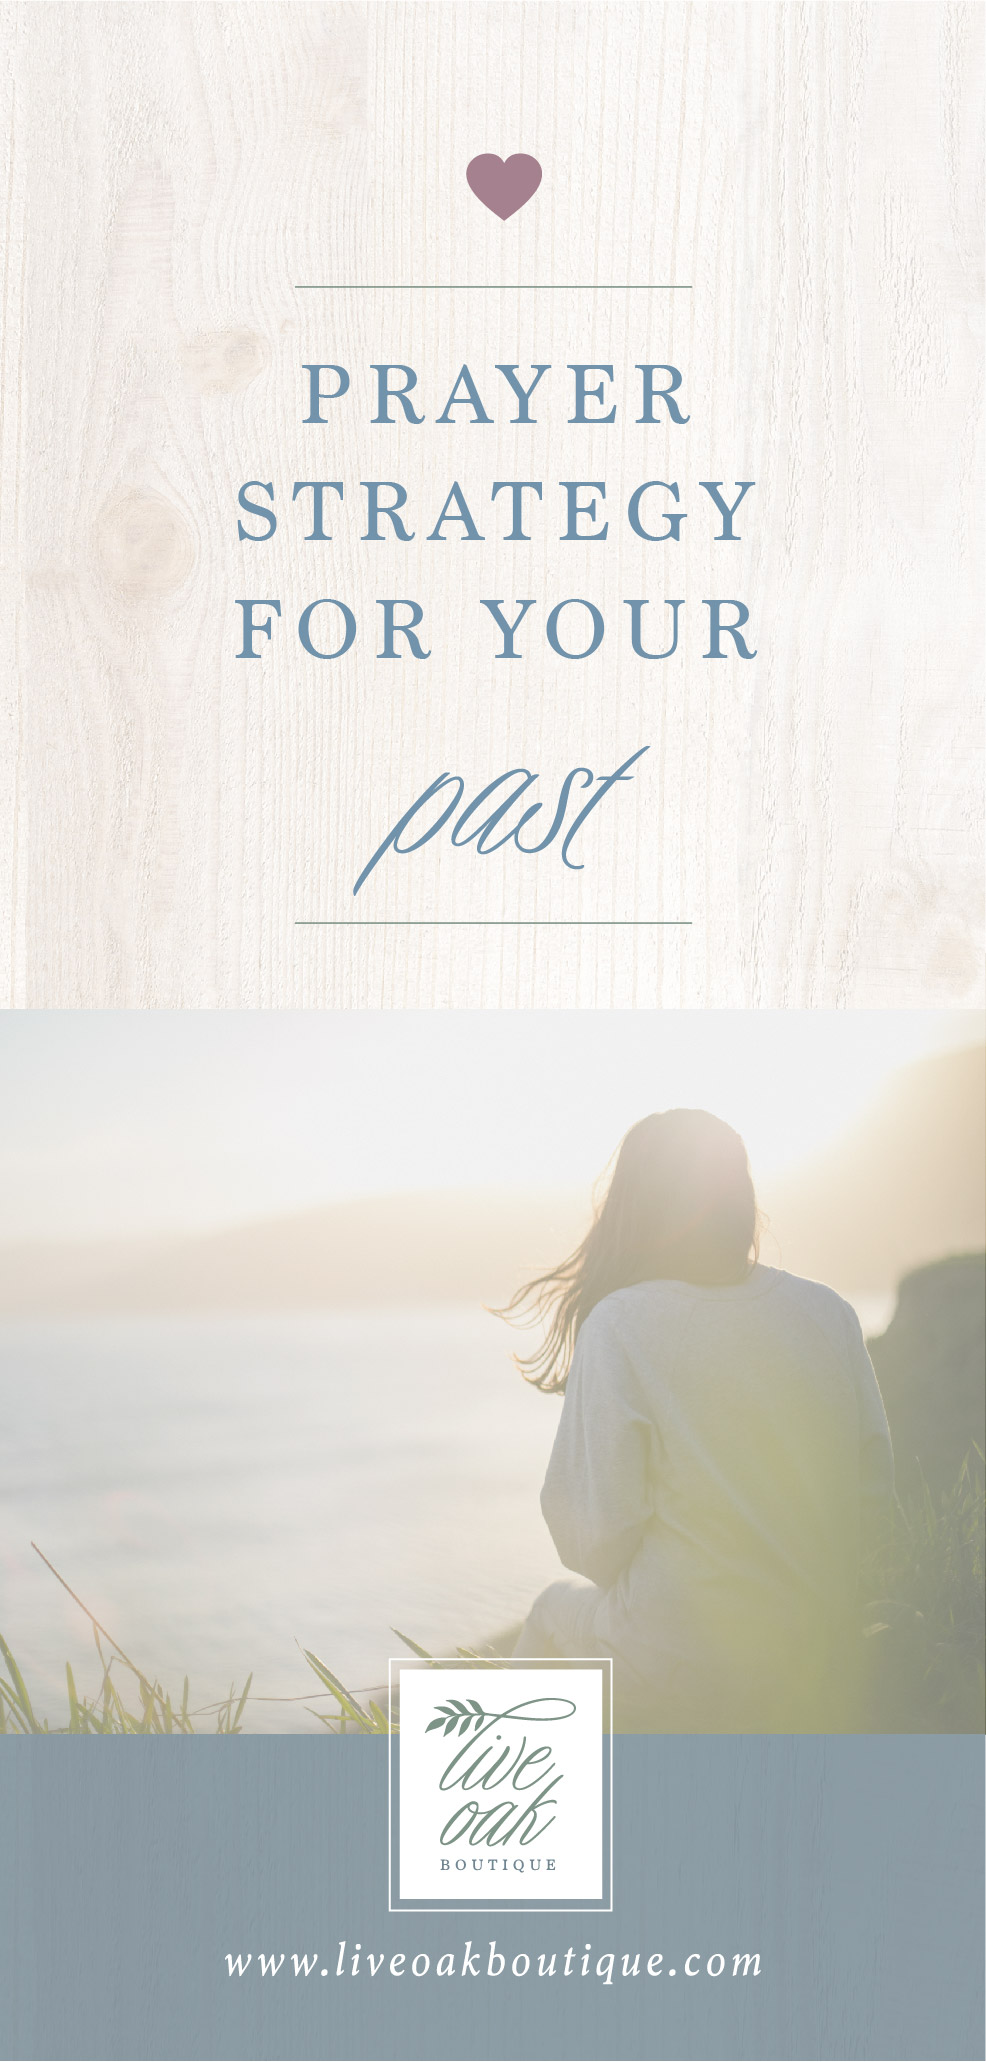 Prayer Strategy for Your Past from Live Oak Boutique. www.liveoakboutique.com